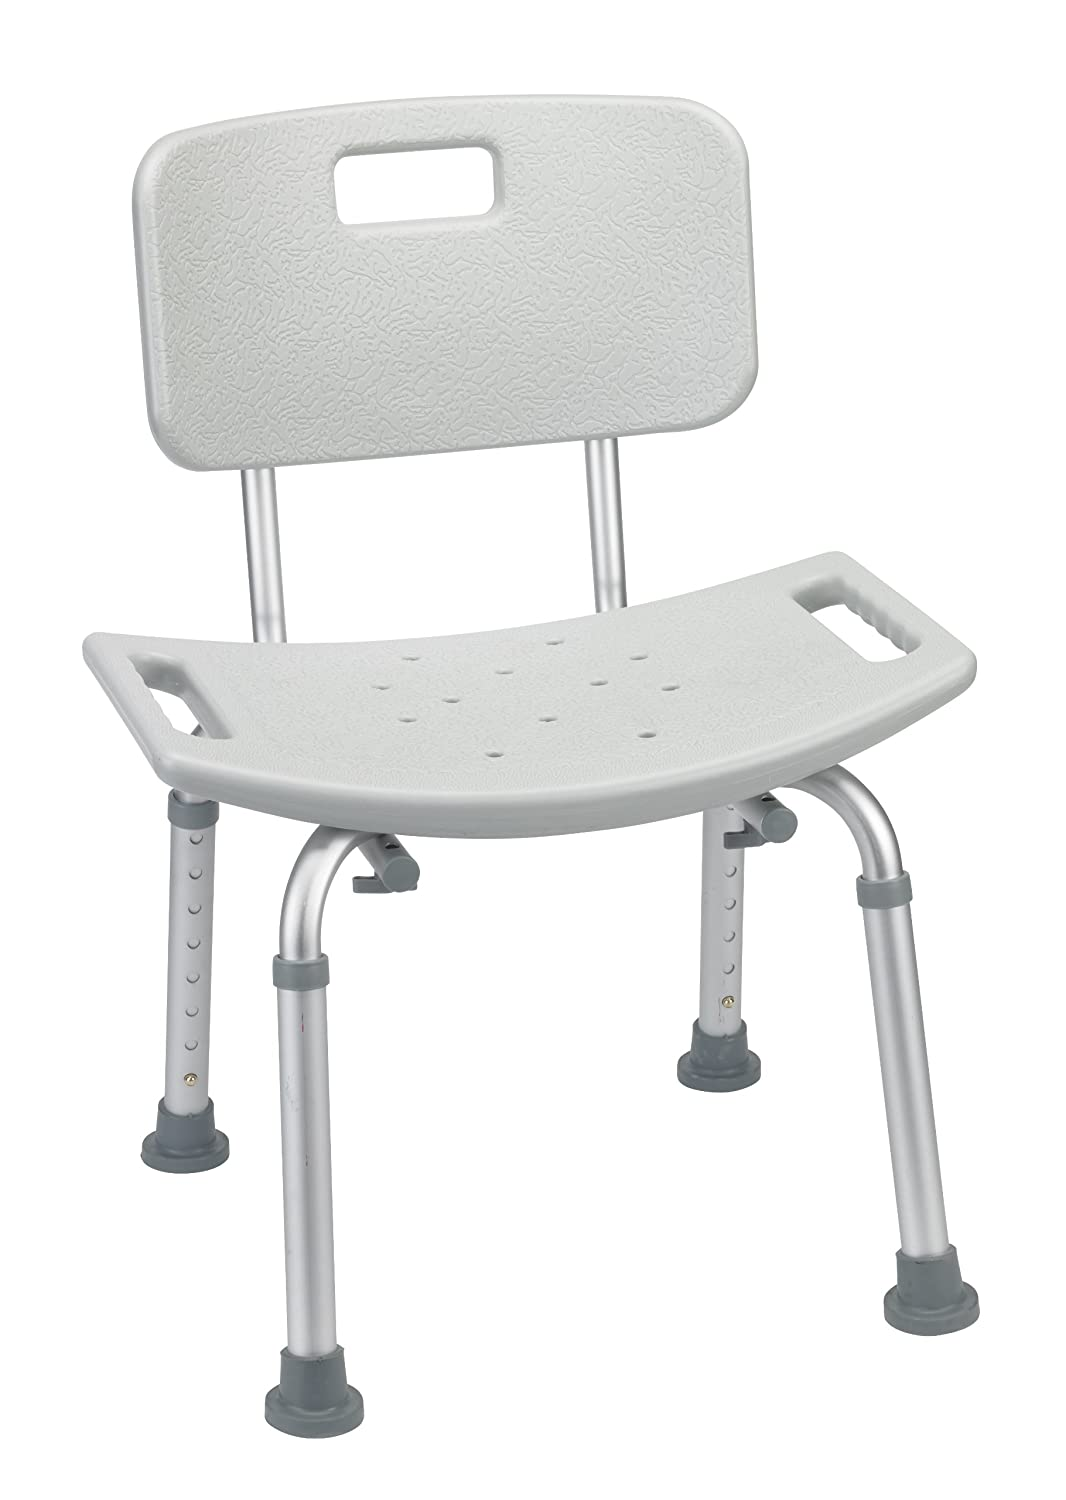 Amazon com drive medical bathroom safety shower tub bench chair with back grey health personal care